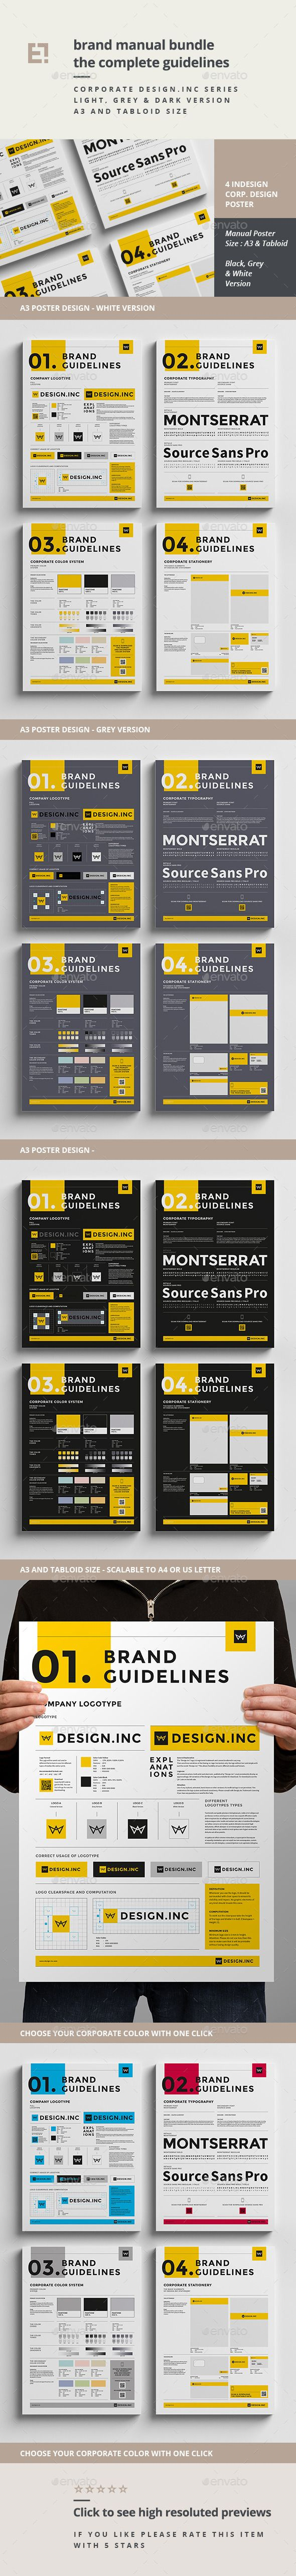 Minimal and Professional Brand Manual and Identity Poster template for creative businesses, created in Adobe InDesign in International DIN A3 and US Tabloid format. Download: http://graphicriver.net/item/-brand-manual-bundle/11285514?ref=ksioks